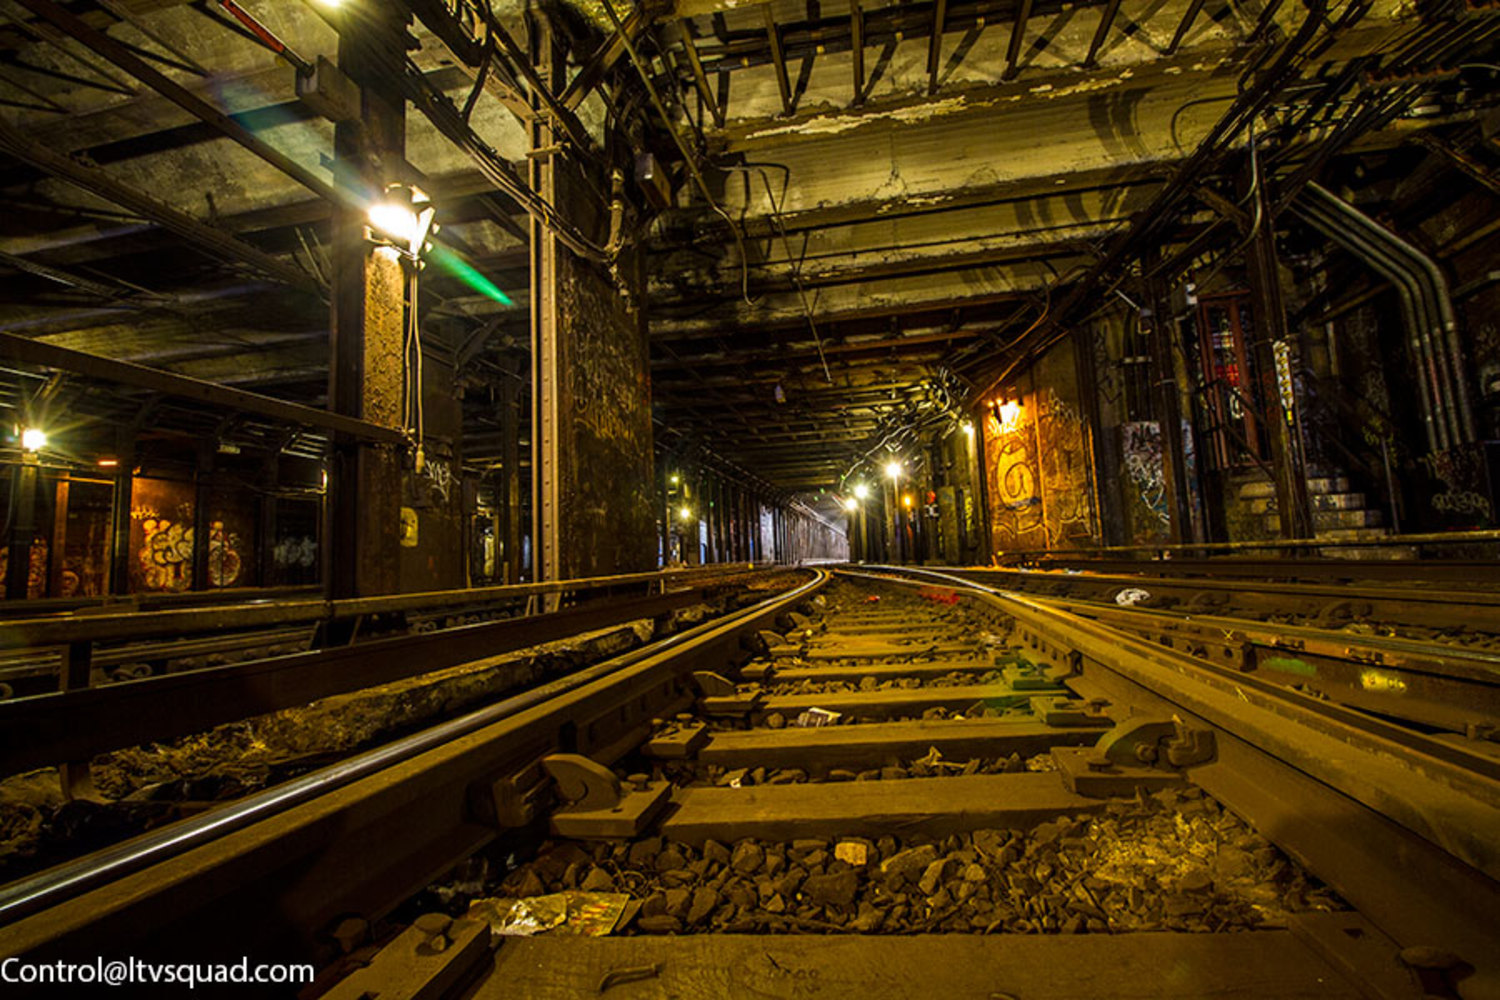 The 137th street subway yard is one of the few subway yards built in NYC that is entirely underground.